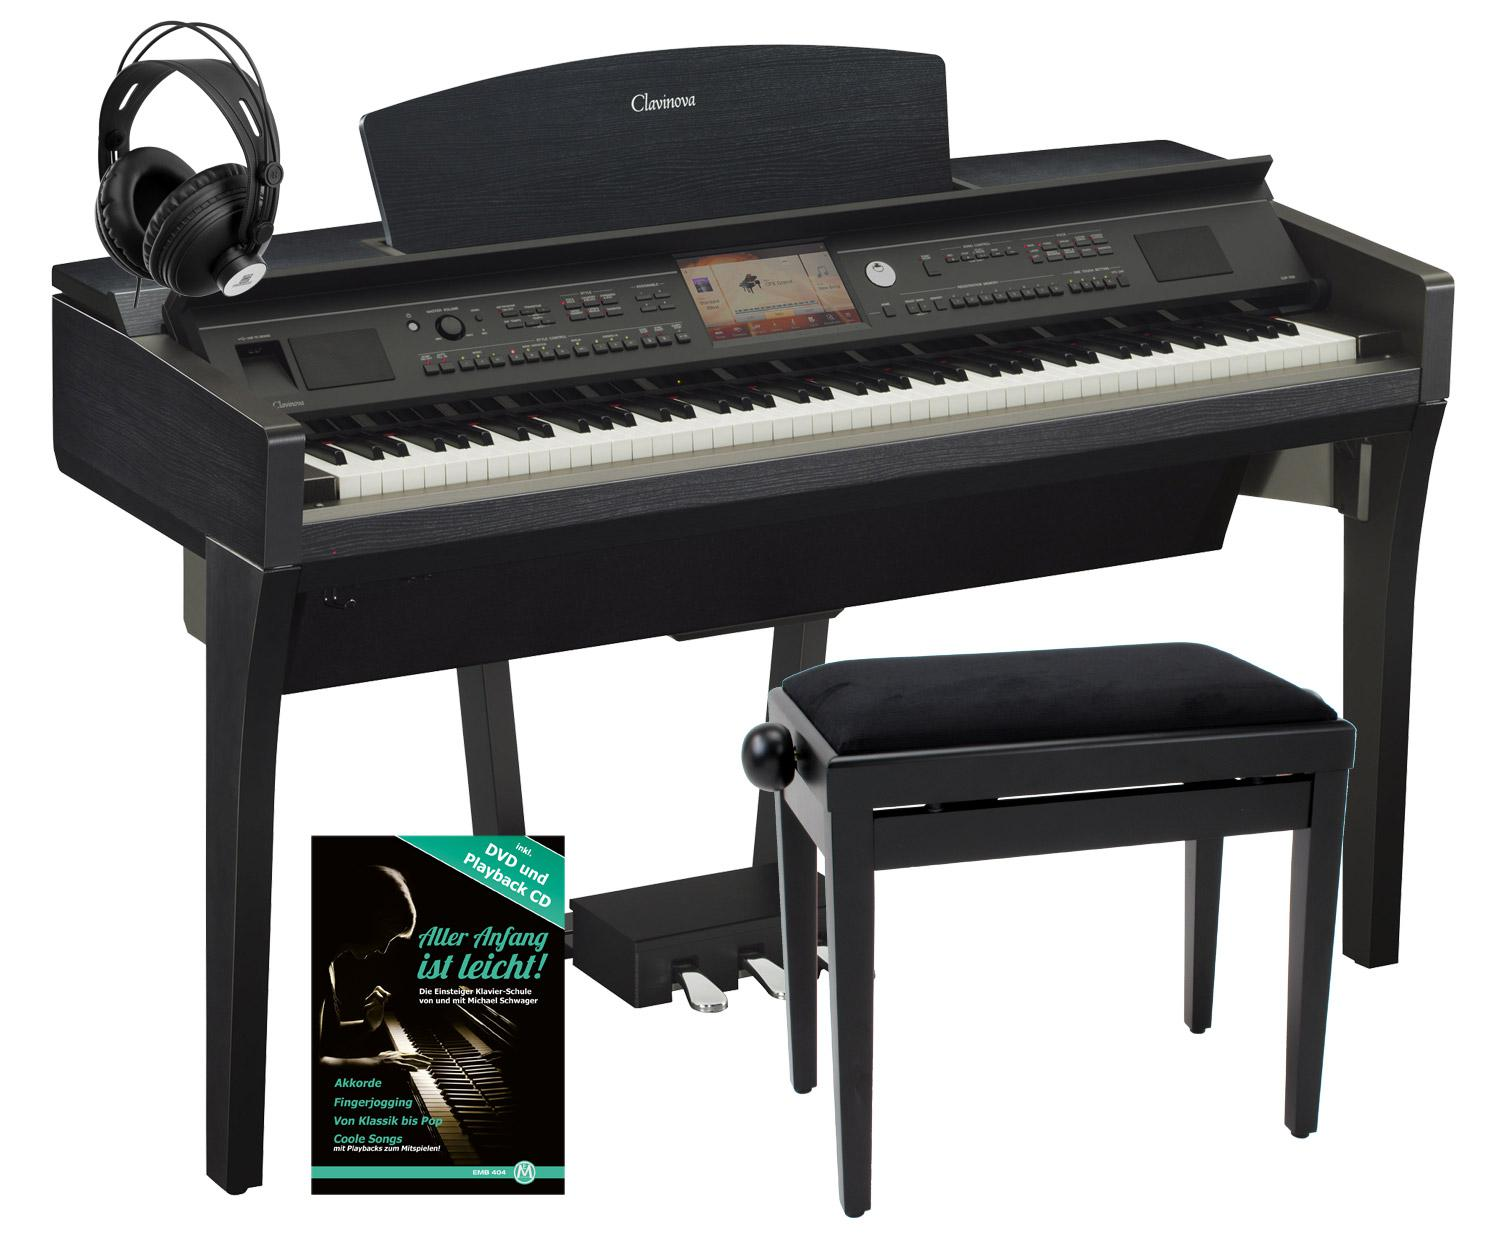 yamaha cvp 709 b clavinova digitalpiano schwerz set inkl bank kopfh rer klavierschule. Black Bedroom Furniture Sets. Home Design Ideas